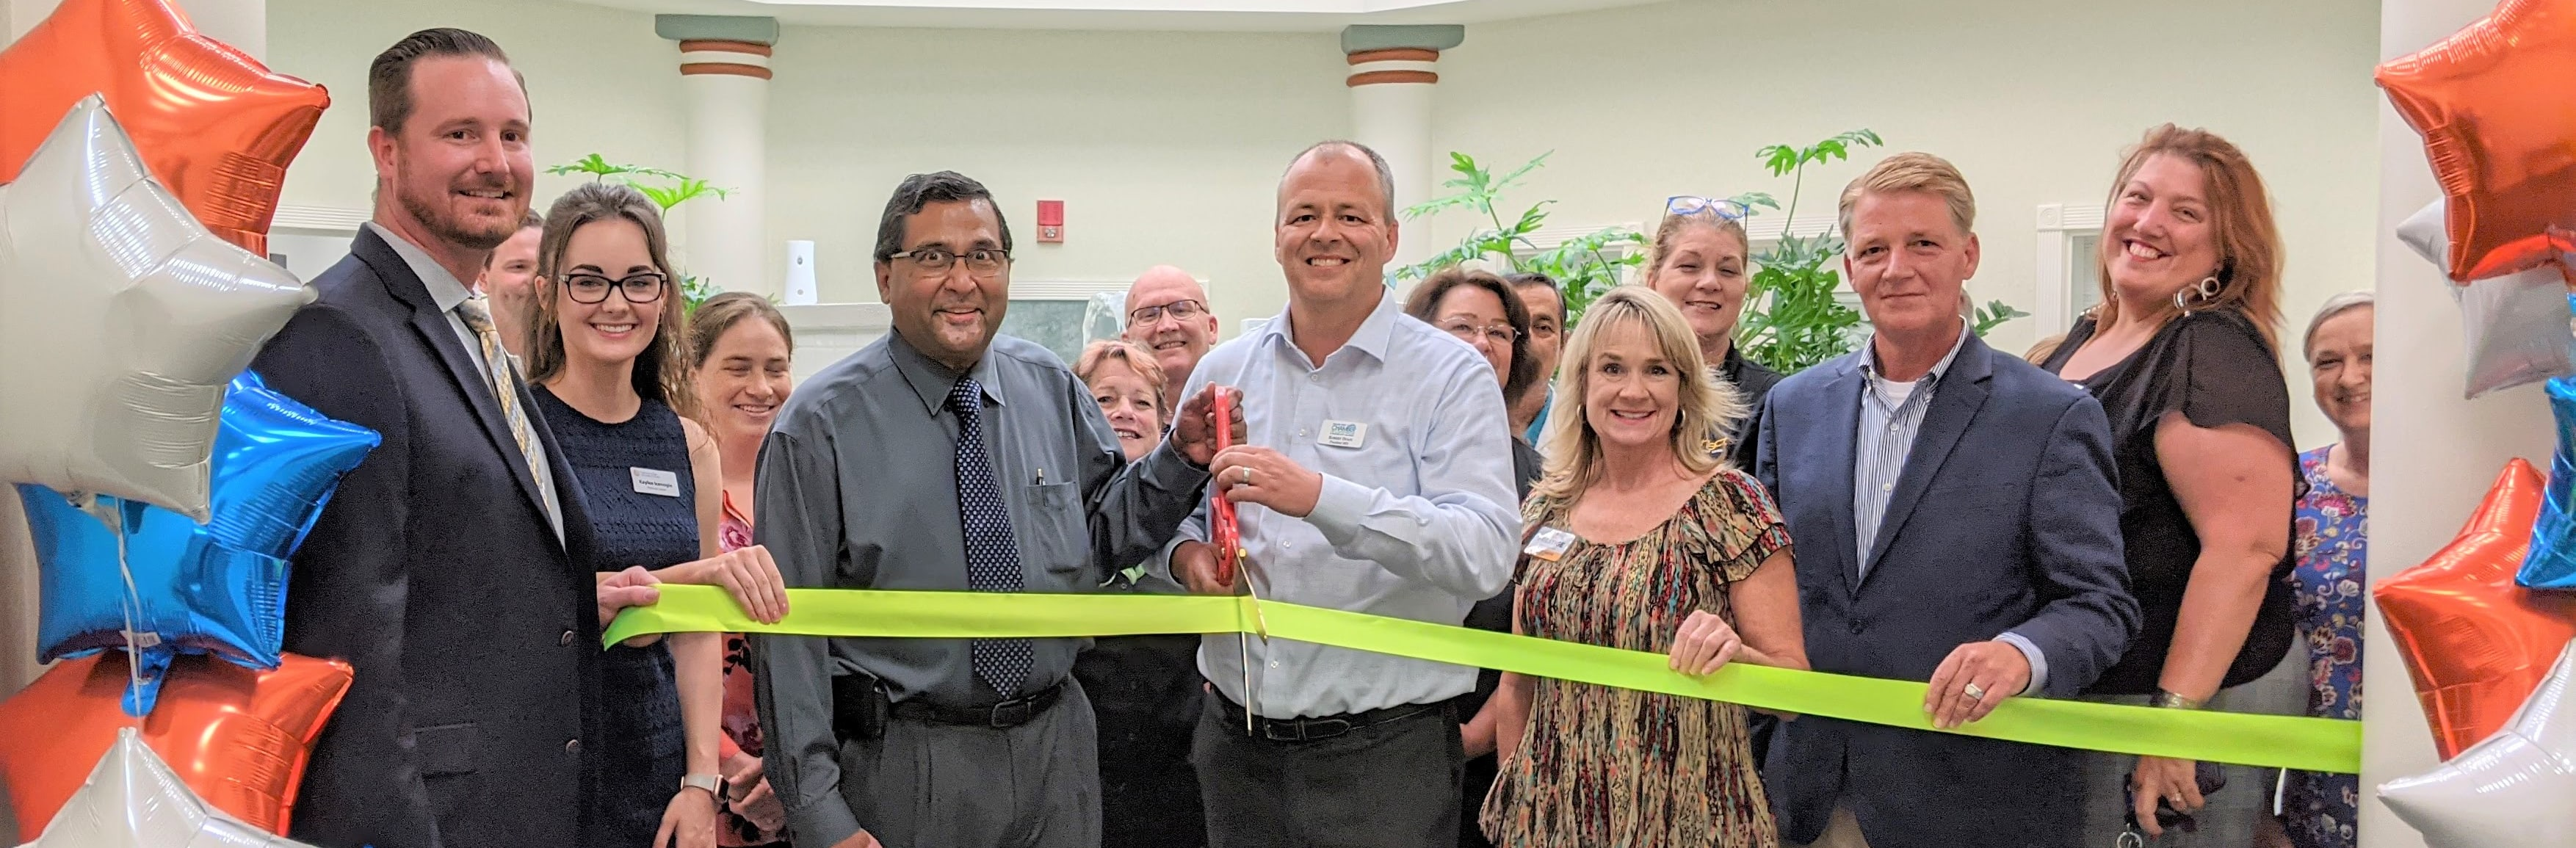 Gastroenterology-of-Orlando---Ribbon-Cutting-and-Business-After-Hours-July-15th-w3508.jpg